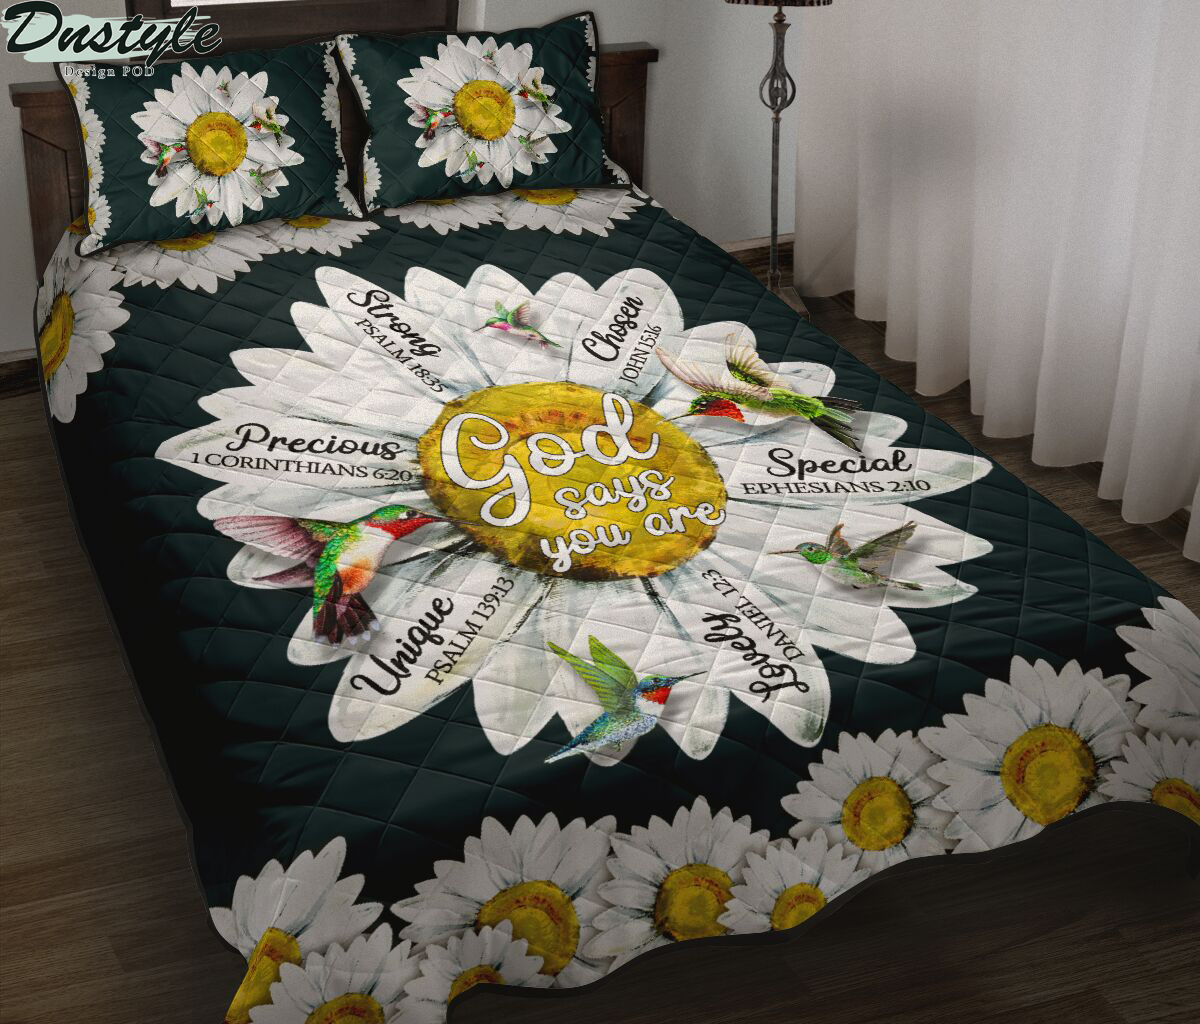 Hummingbird daisy god says you are quilt bed set